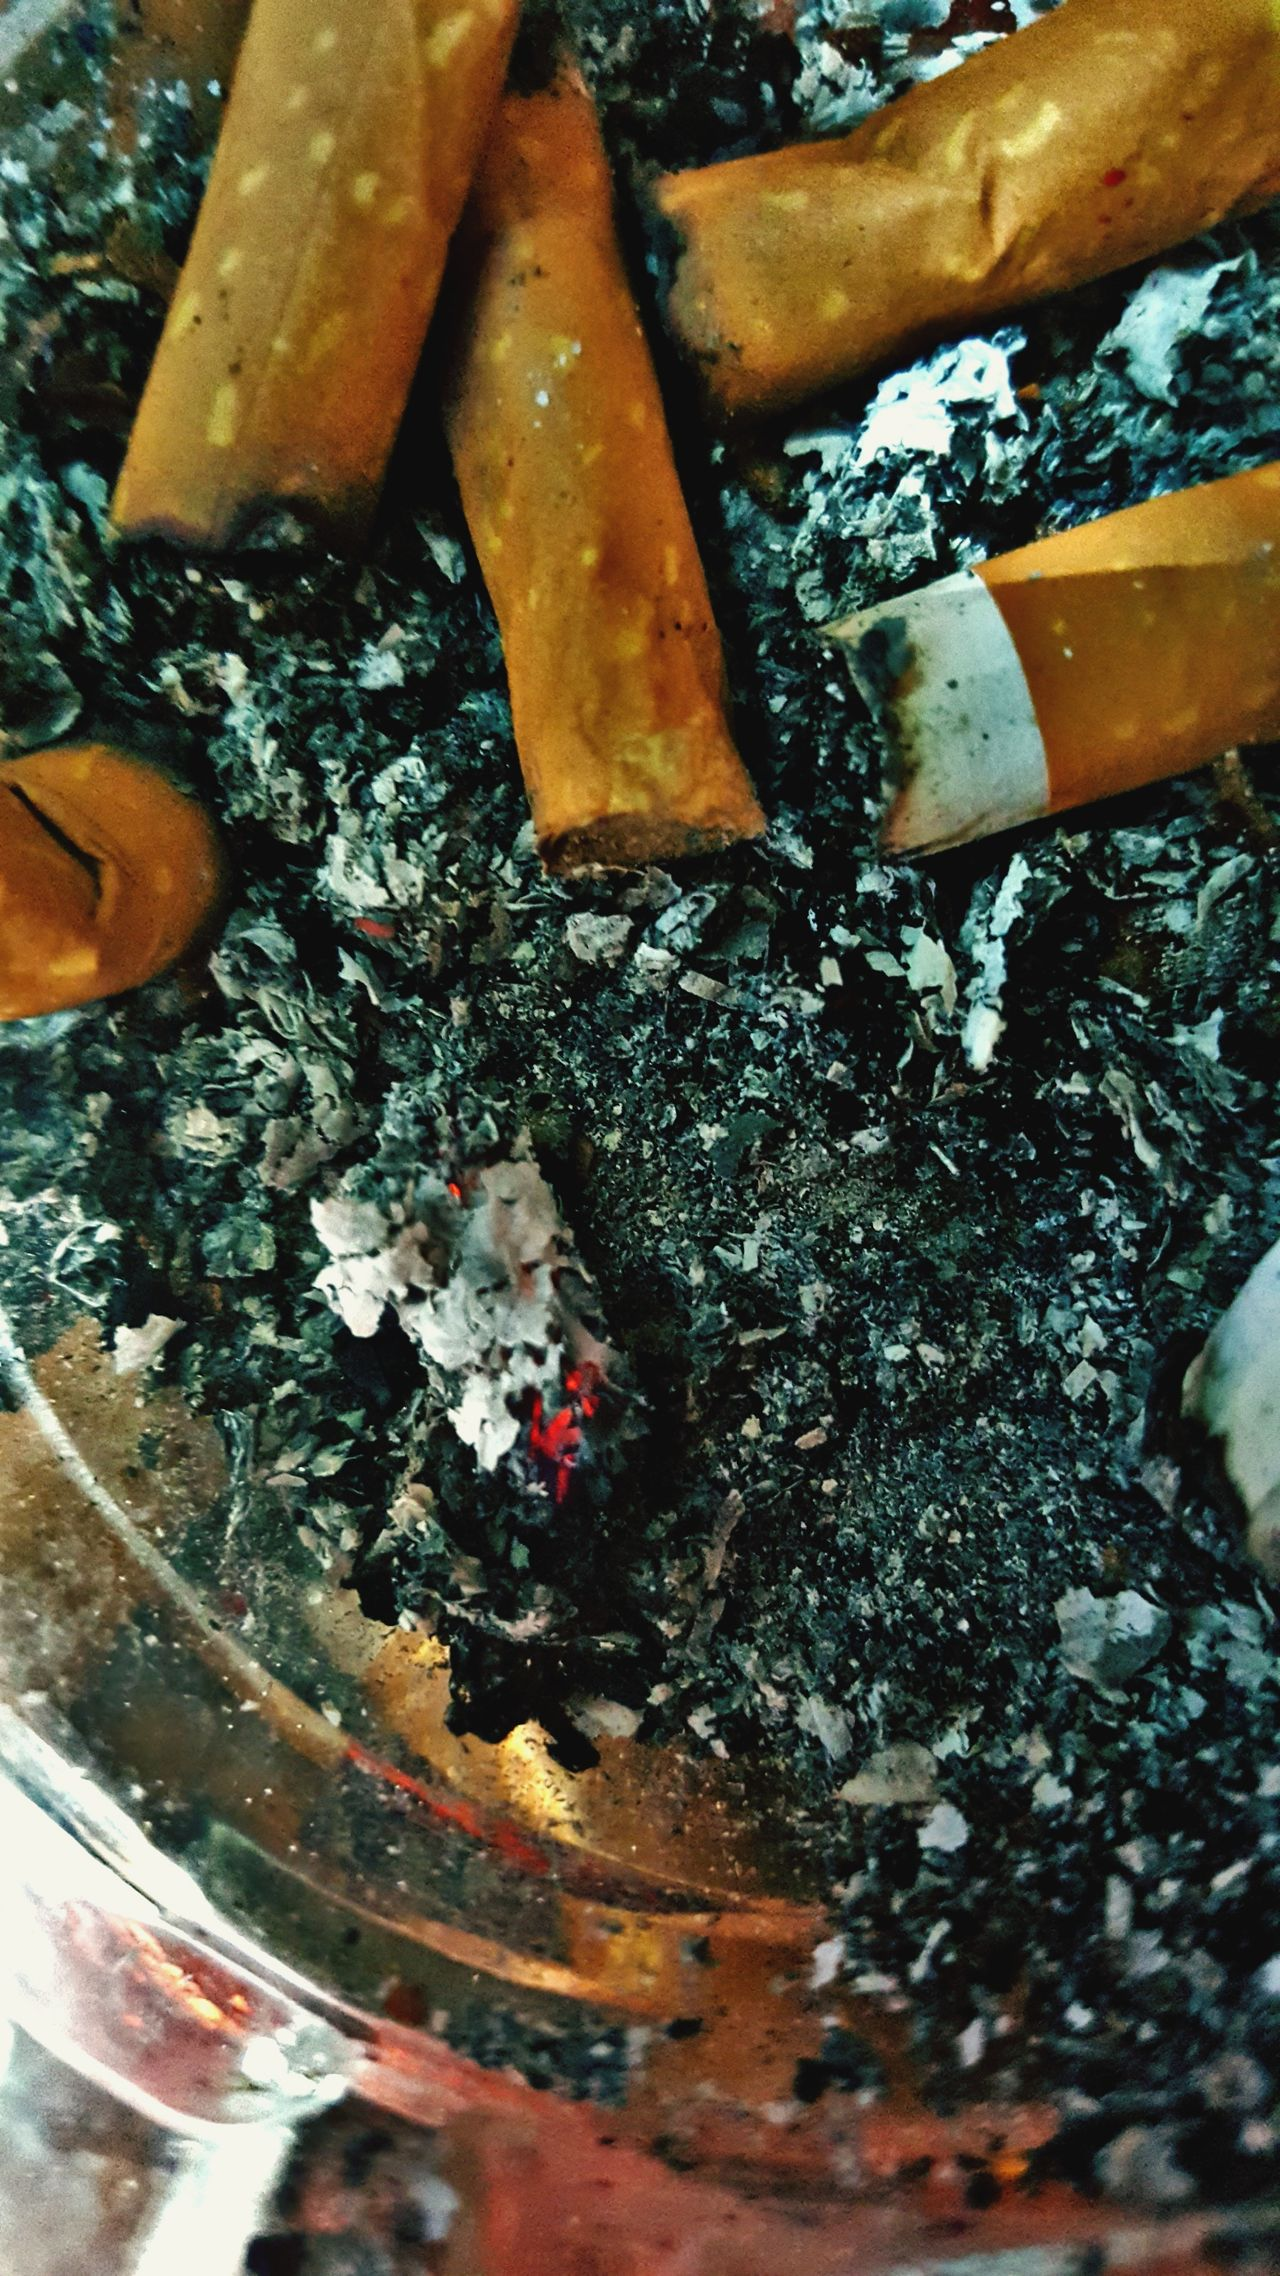 Smoking Issues Addiction Bad Habit Ashtray  RISK High Angle View Indoors  Close-up No People Social Issues Ash Food Day Freshness